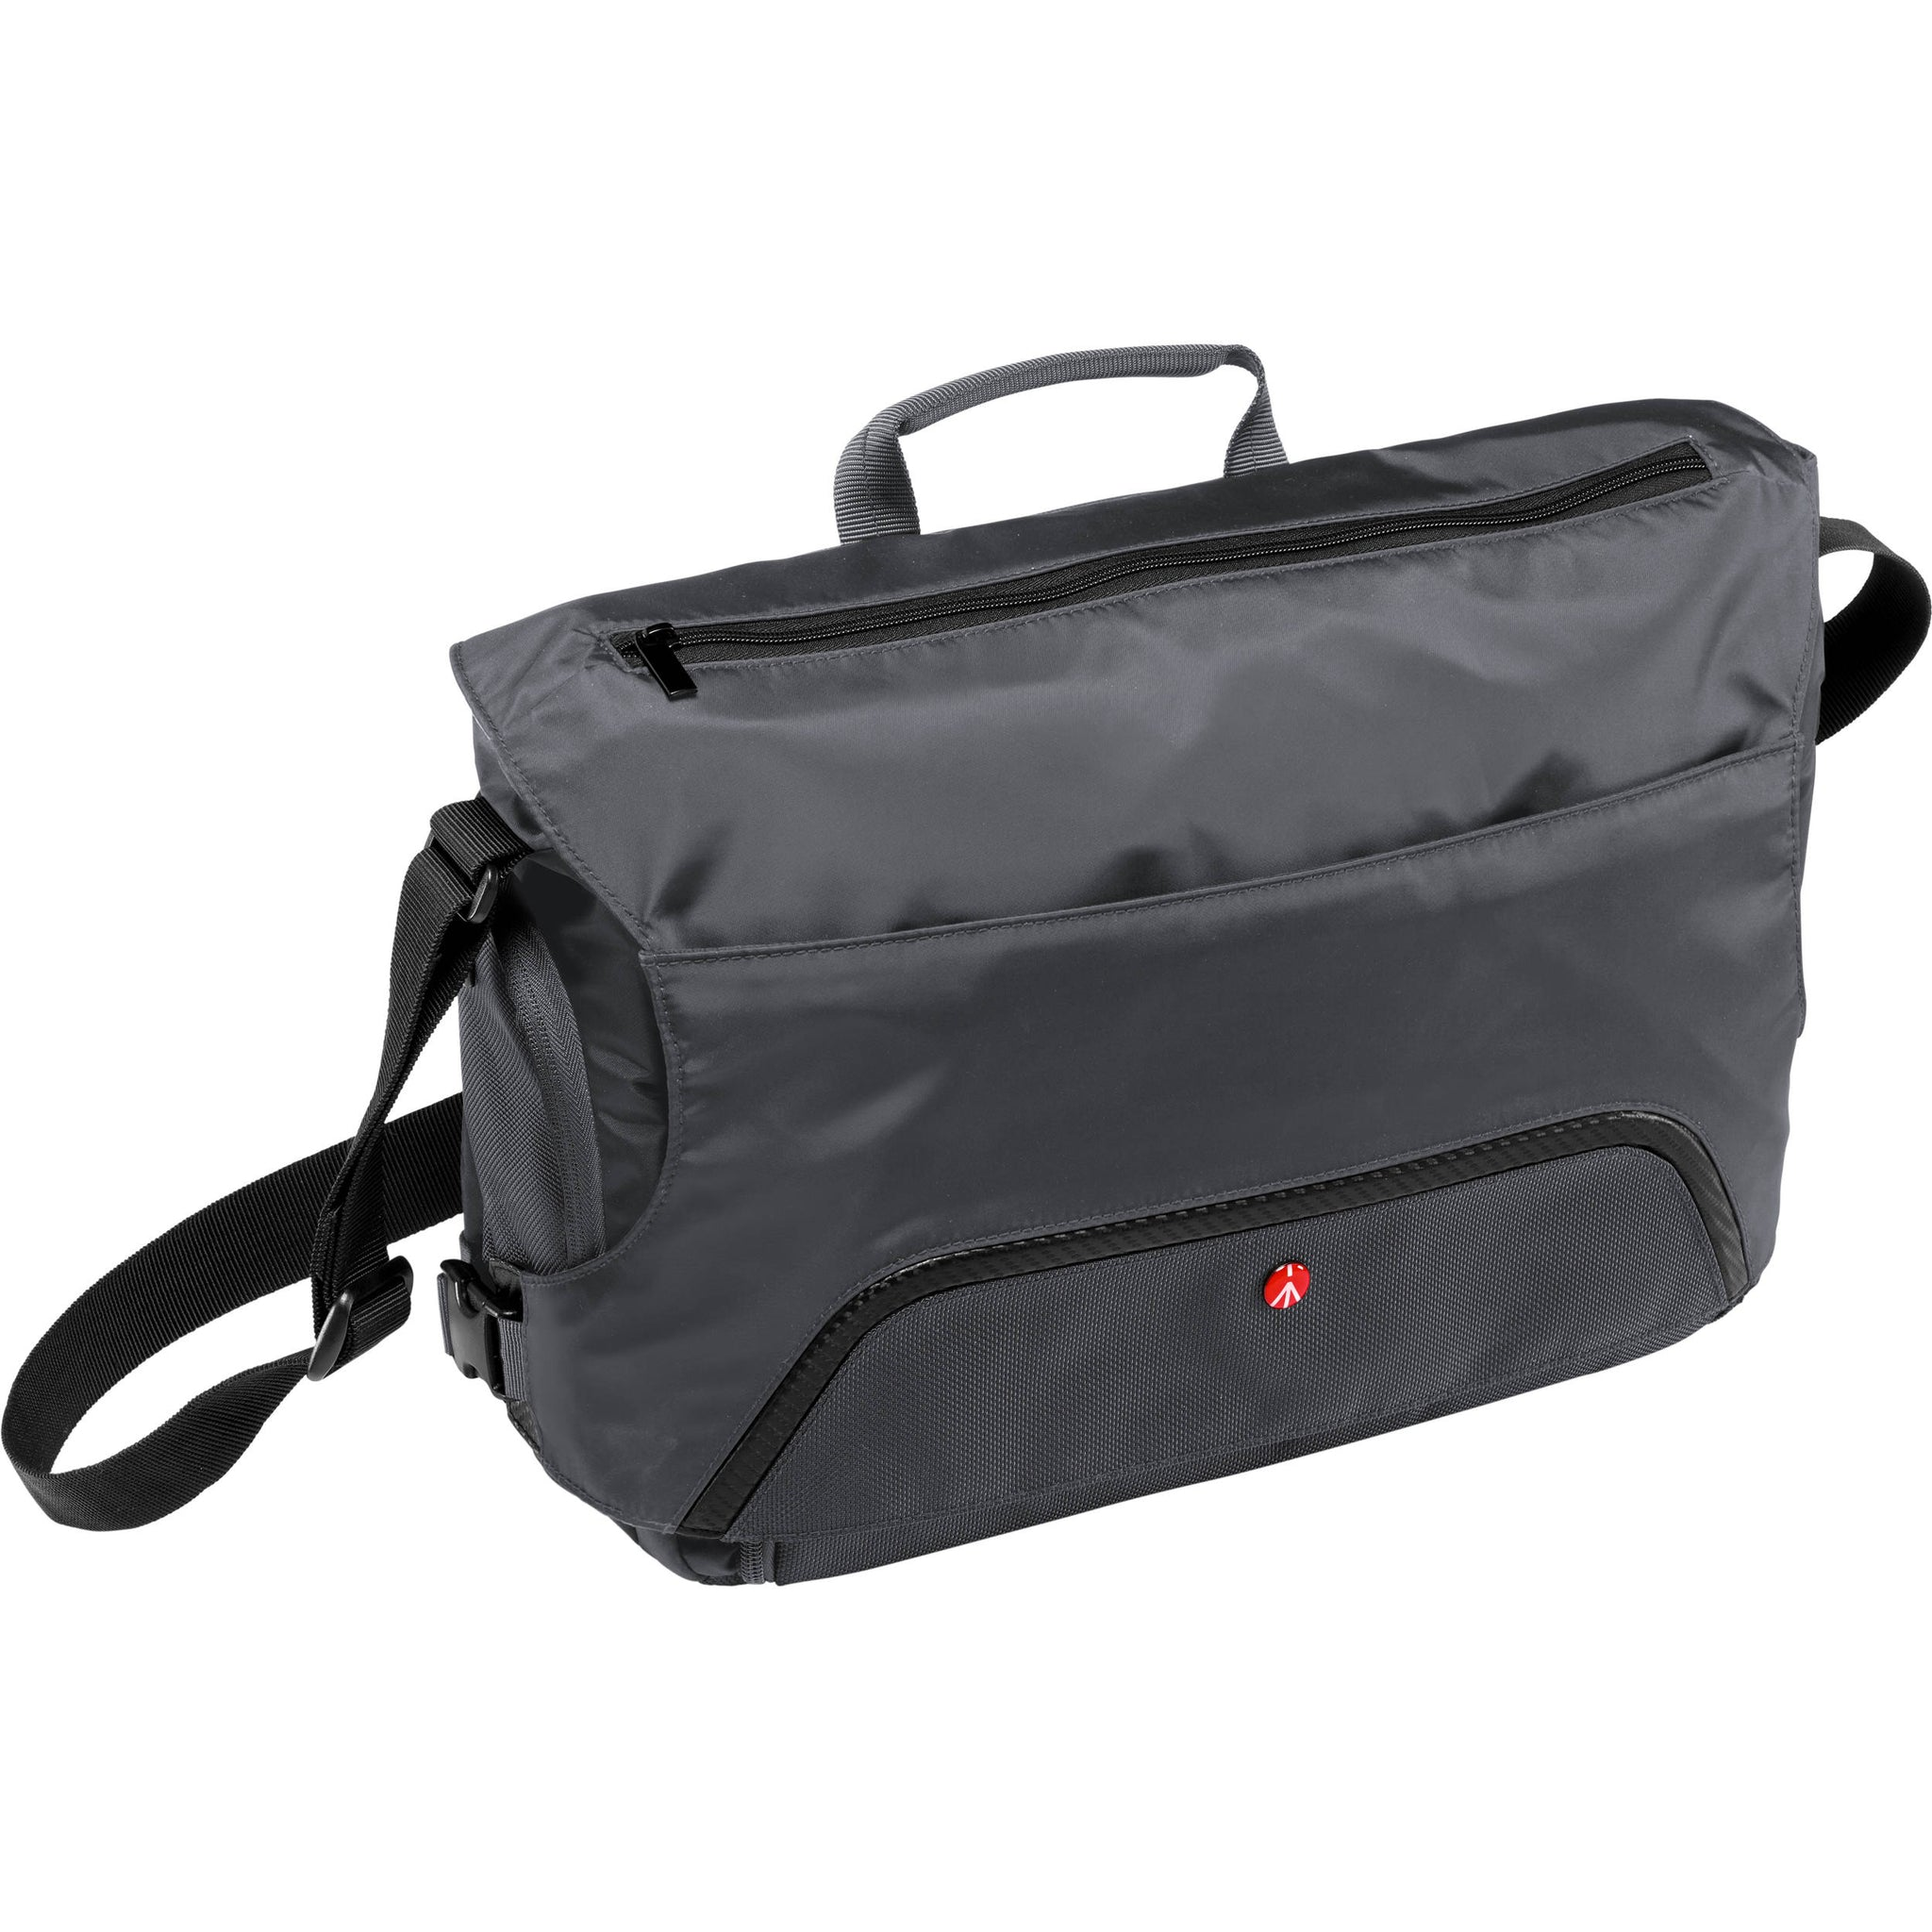 Manfrotto Large Advanced Befree Messenger Bag (Gray)